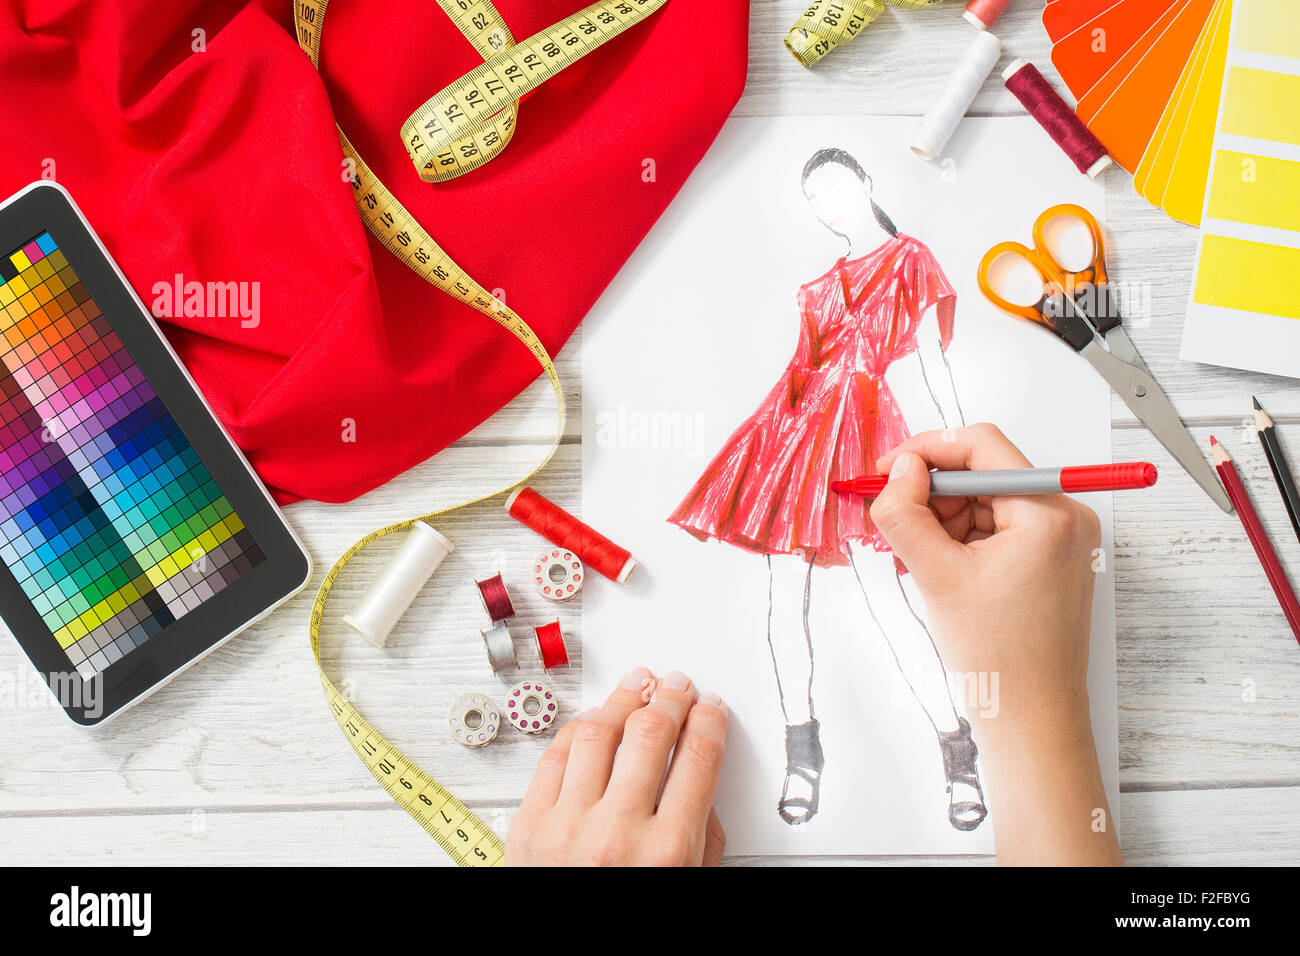 Fashion Designer Working In Studio Close Up Design Stock Photo 87619828 Alamy